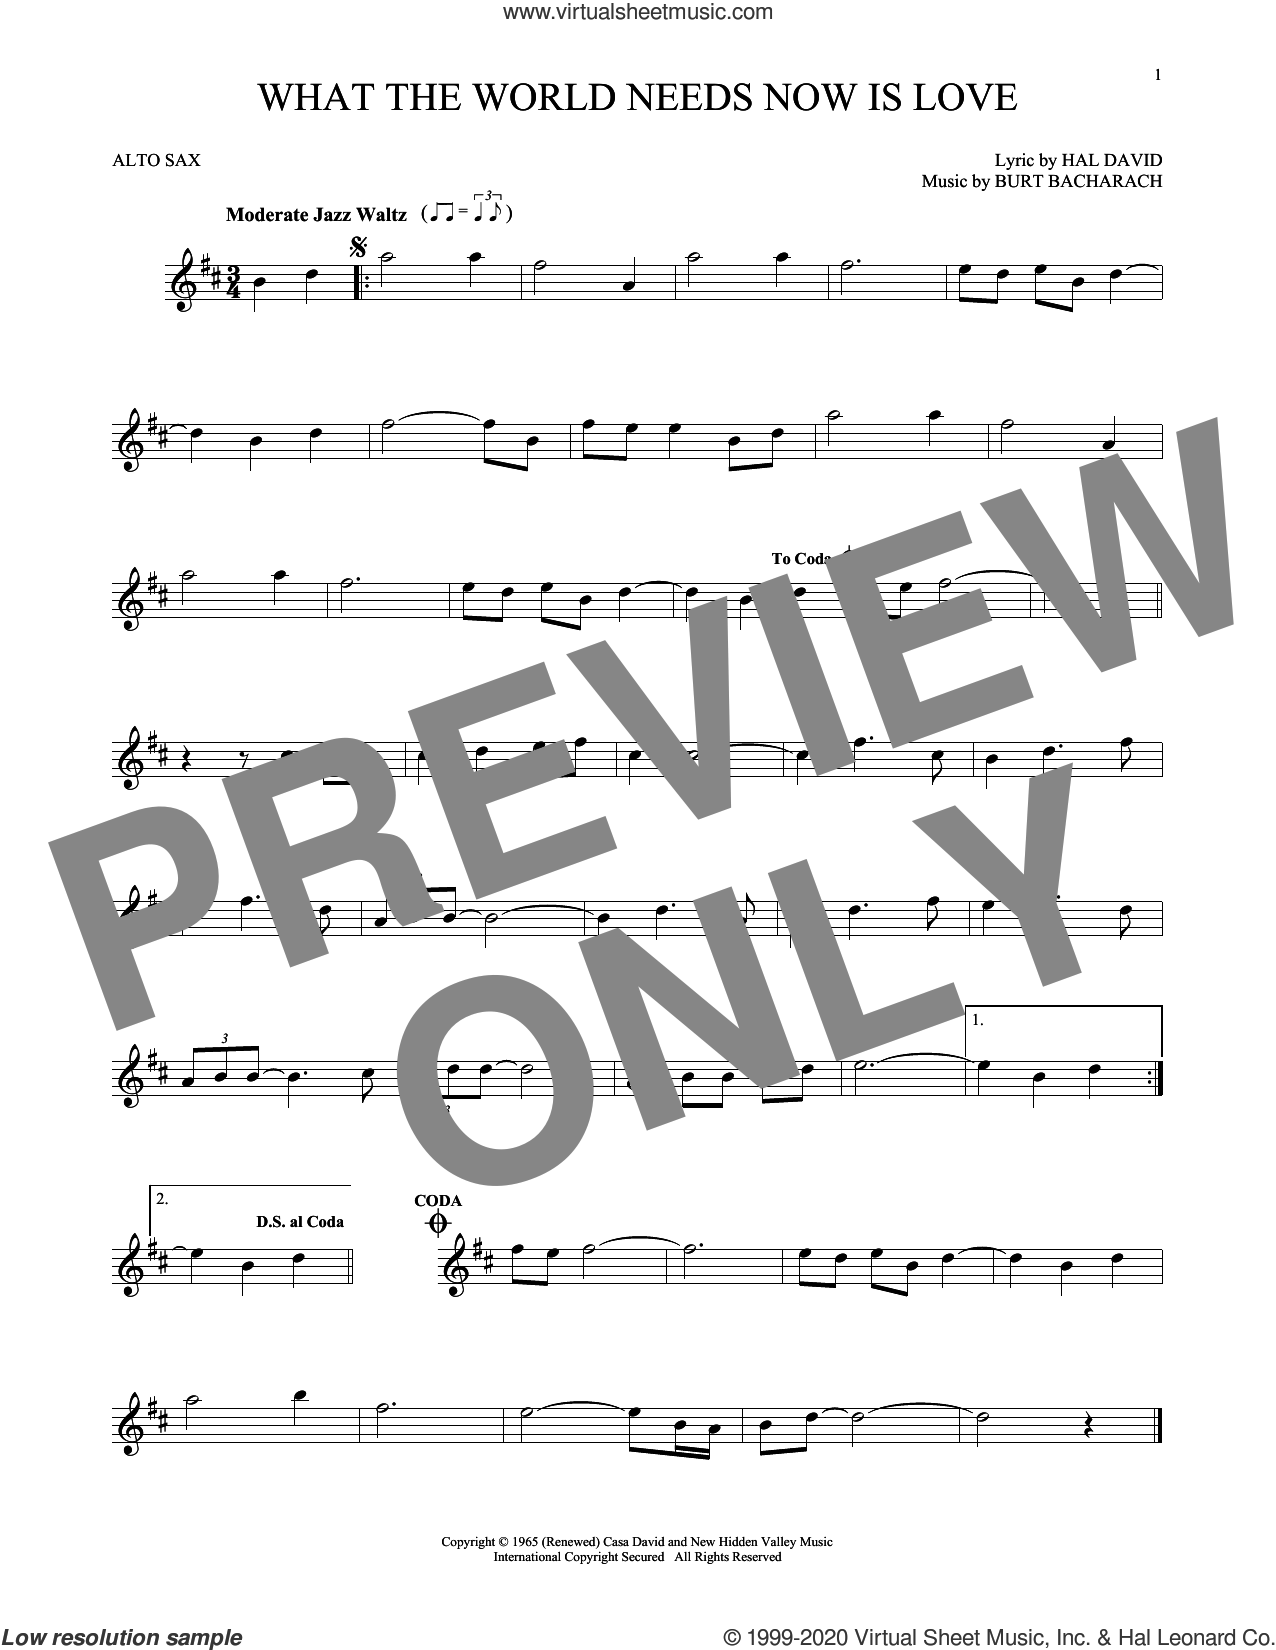 What The World Needs Now Is Love sheet music for alto saxophone solo by Bacharach & David, Jackie DeShannon, Burt Bacharach and Hal David, intermediate skill level